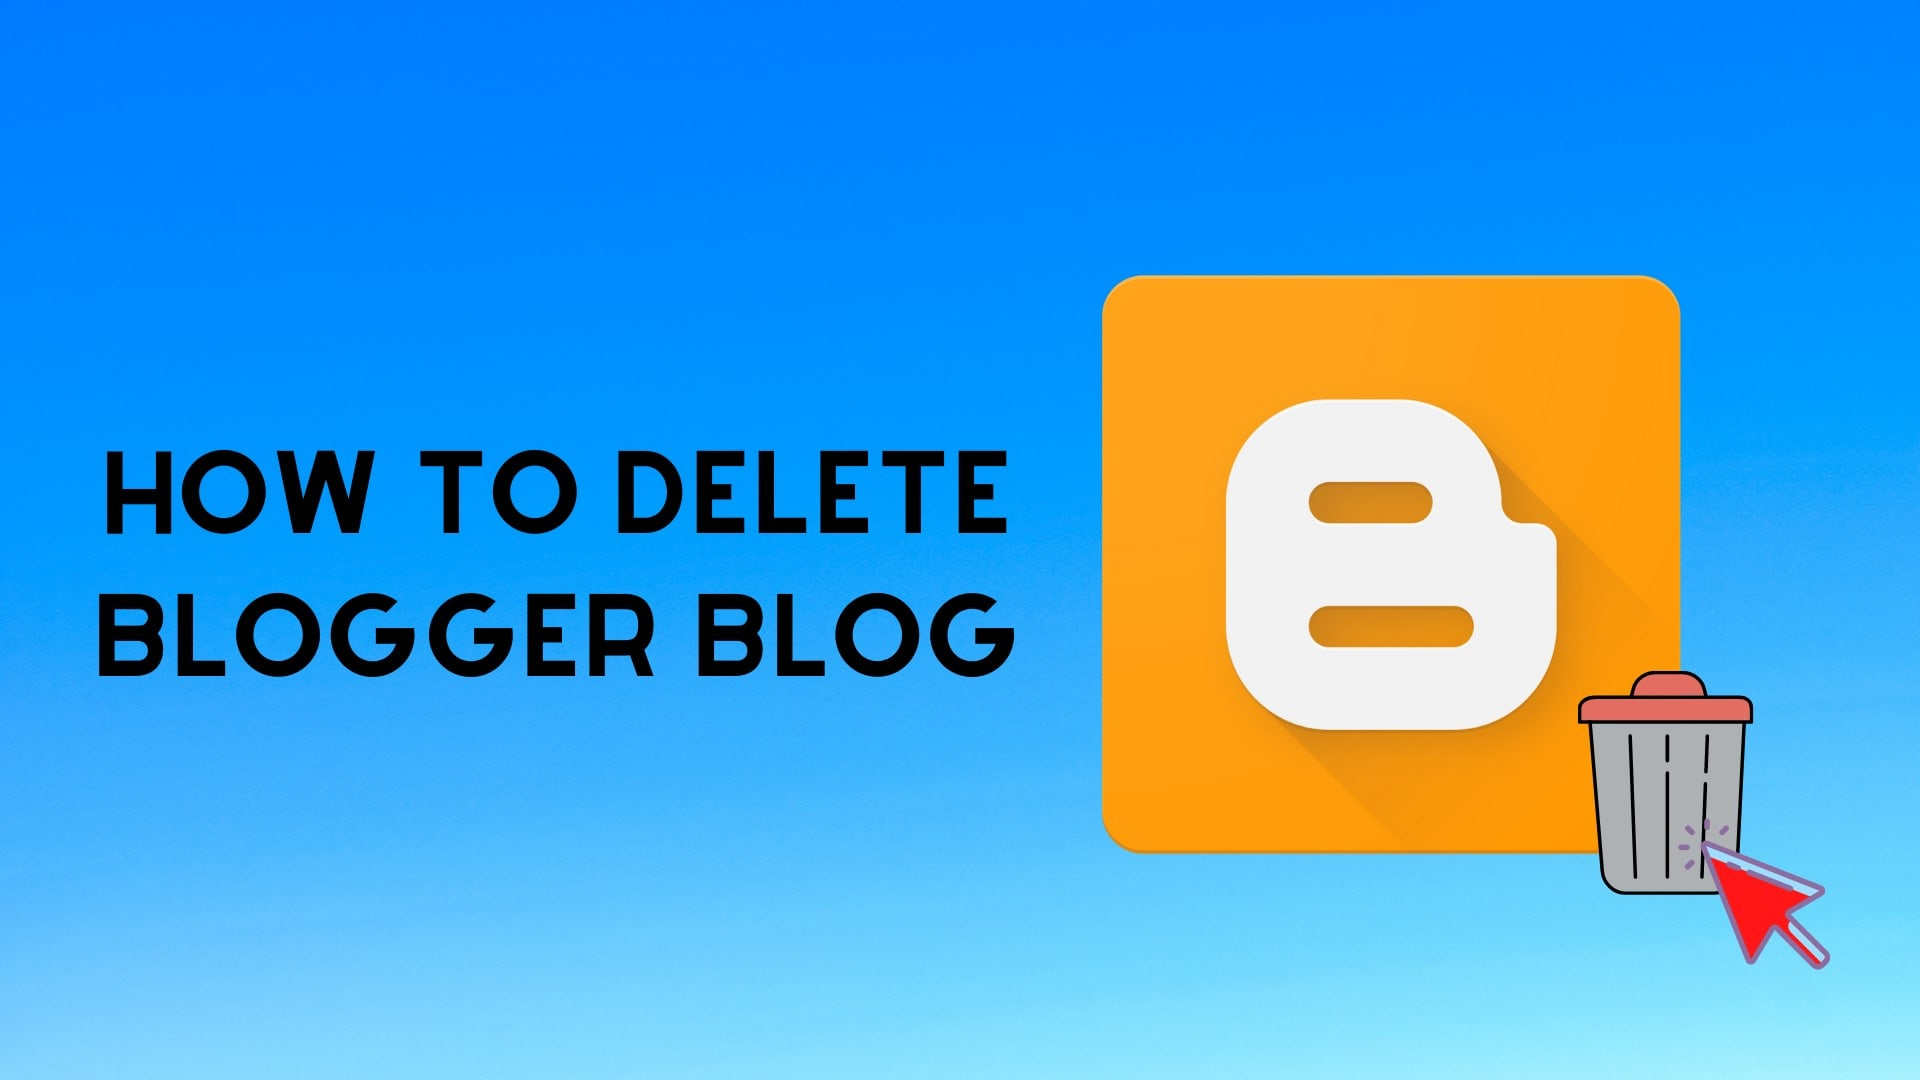 How to delete blog